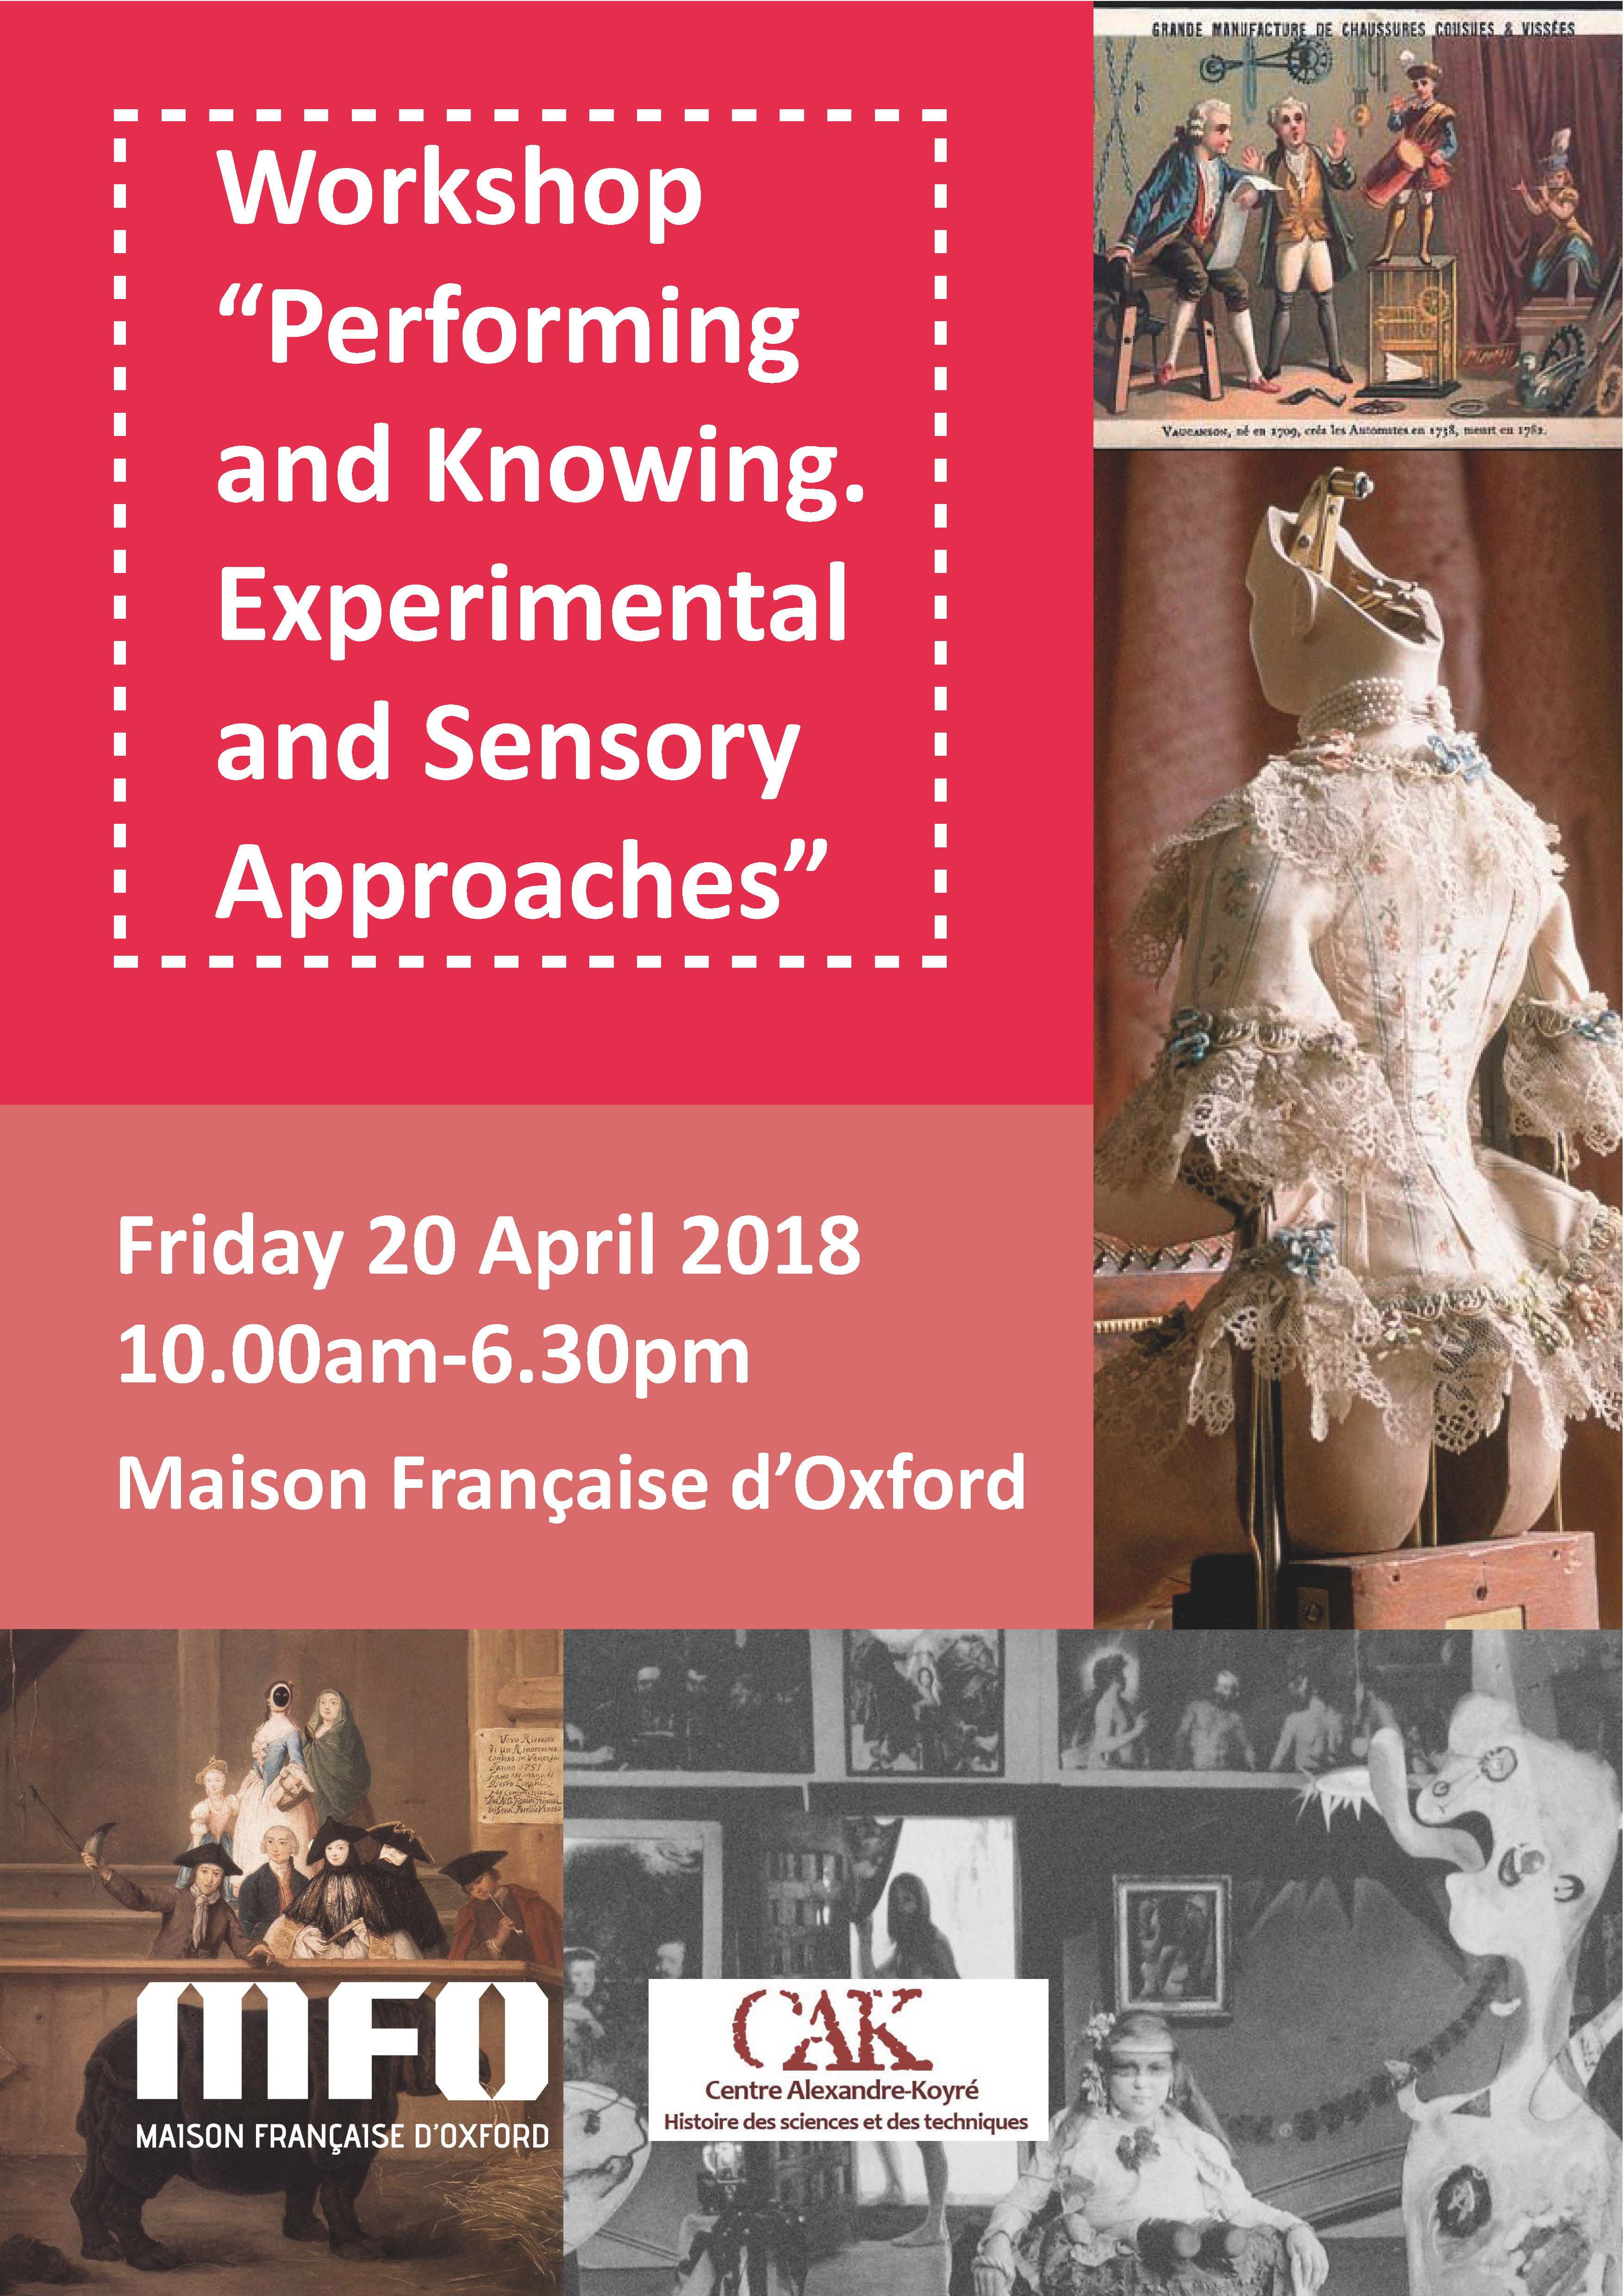 Workshop - Performing and knowing. Experimental and sensory approaches